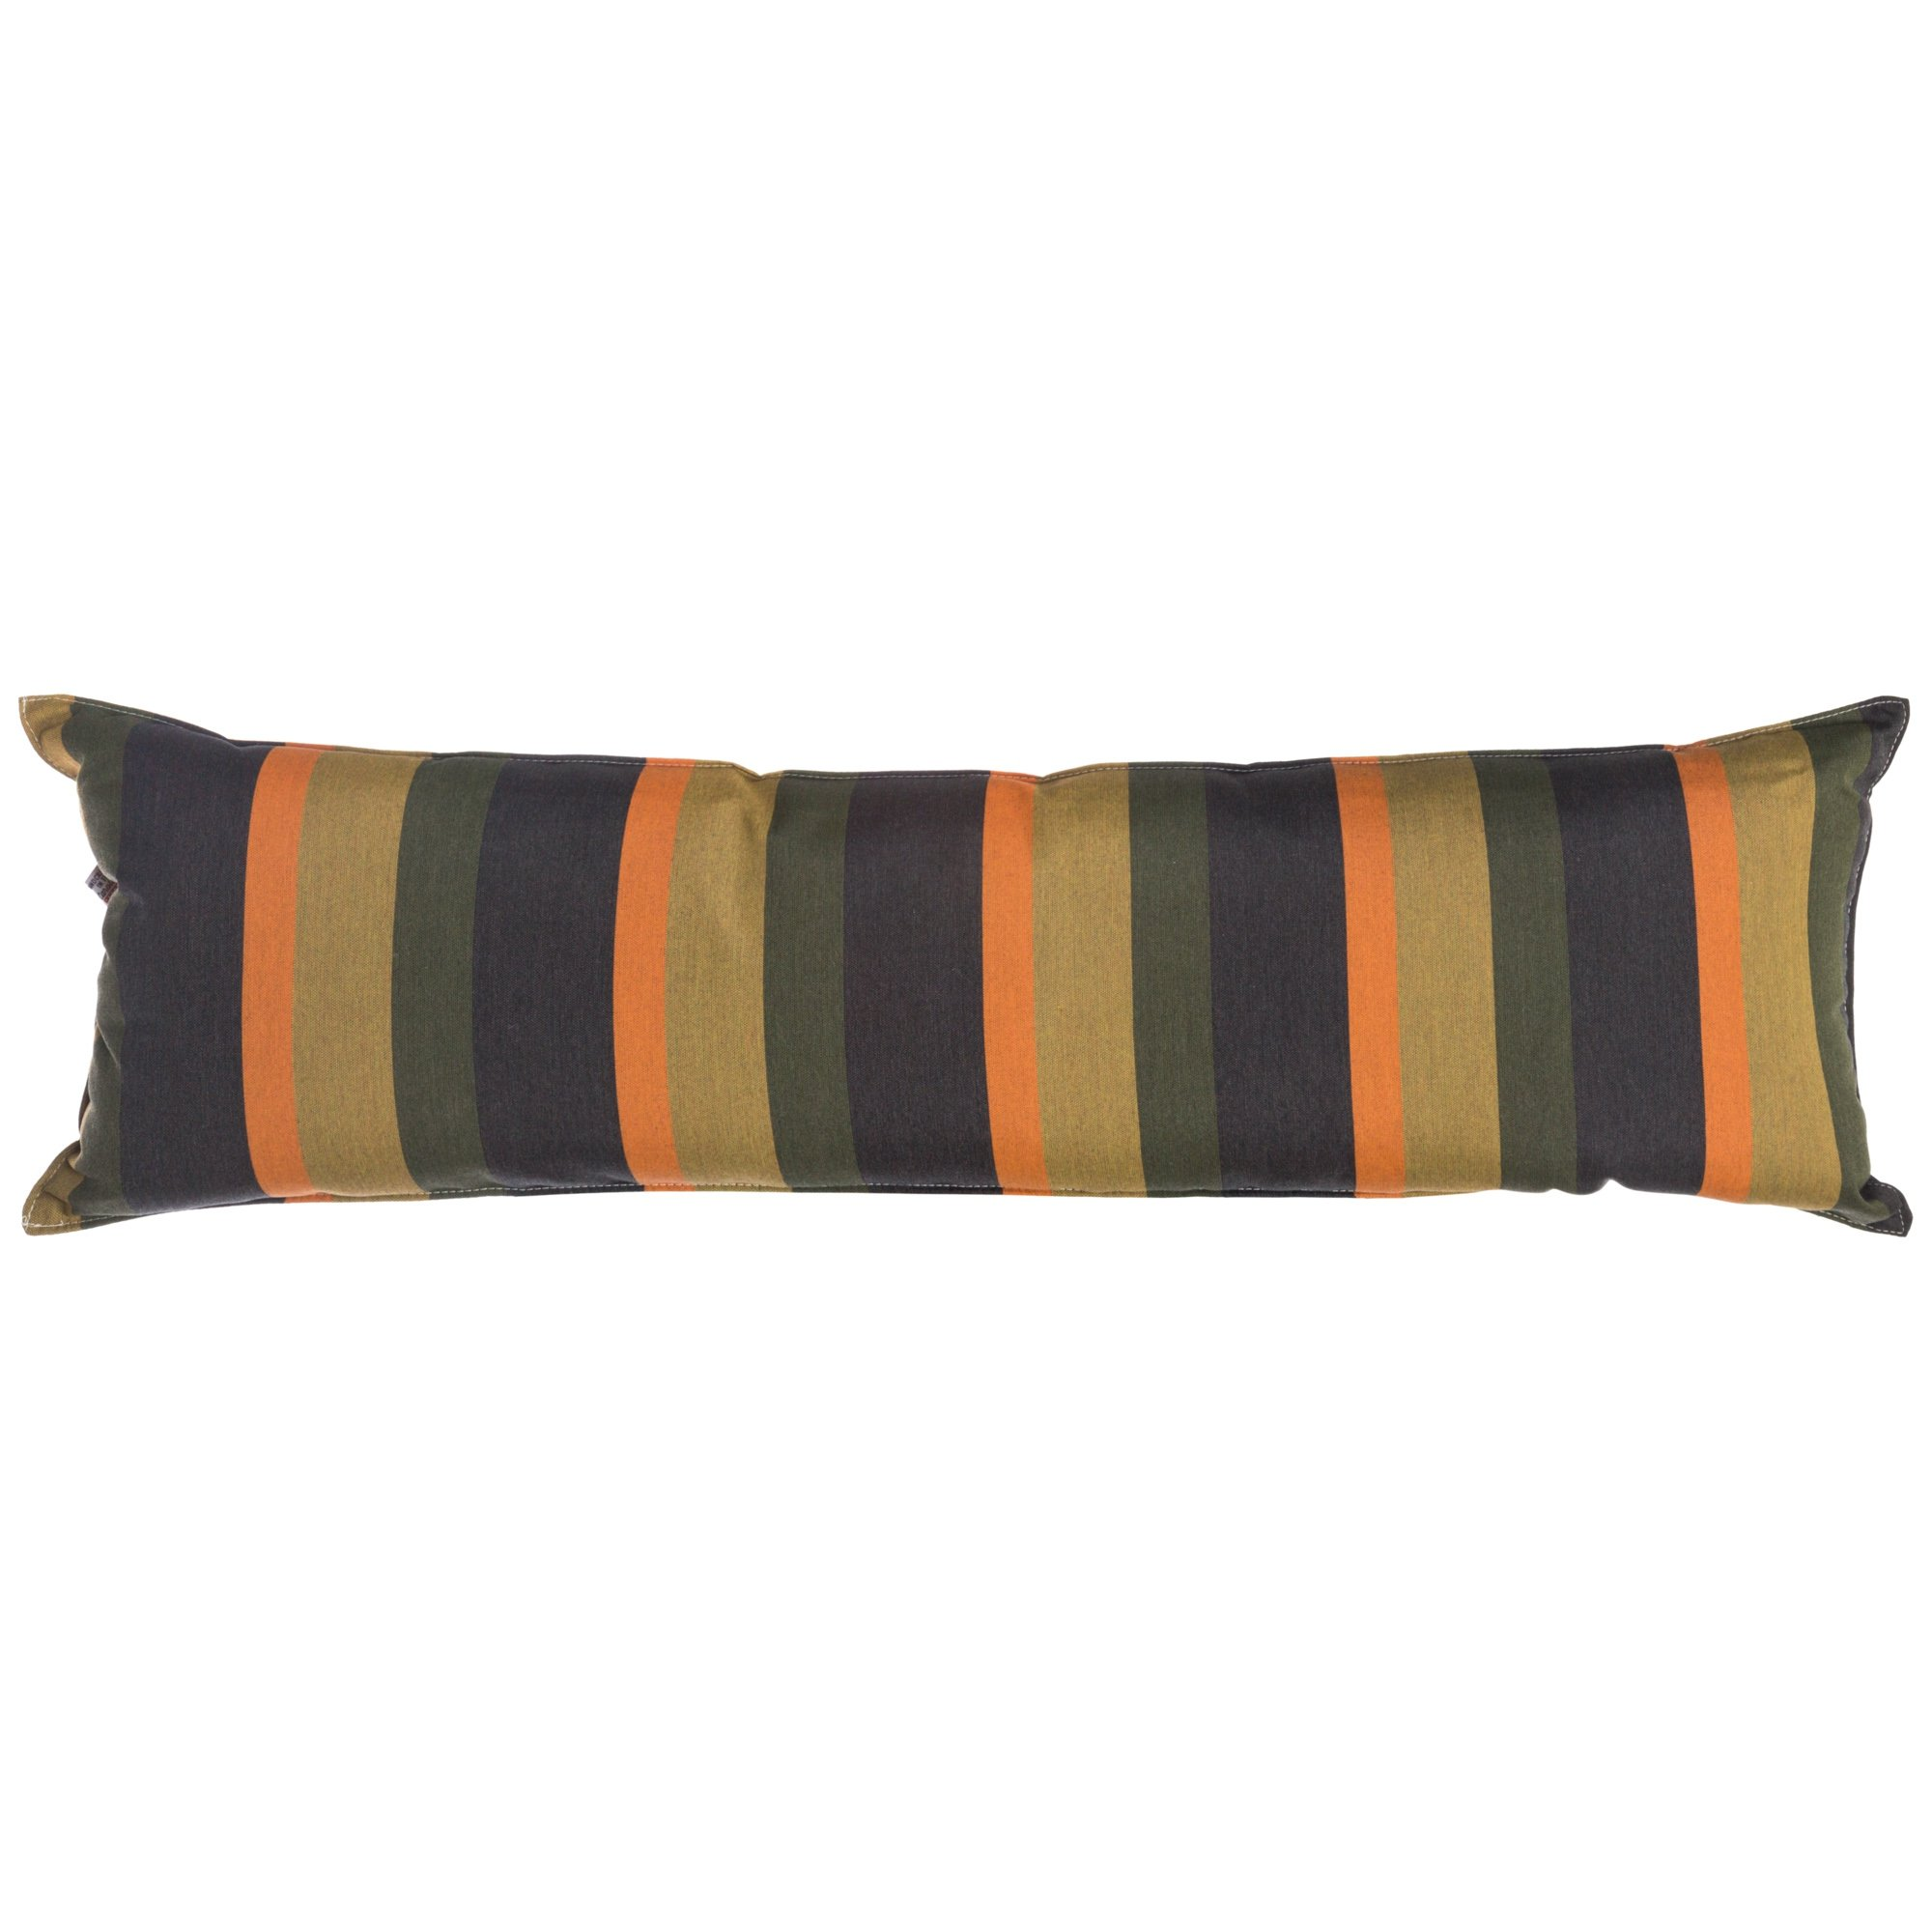 Pawleys Island Long Hammock Pillow - Gateway Aspen by Pawleys Island Hammocks